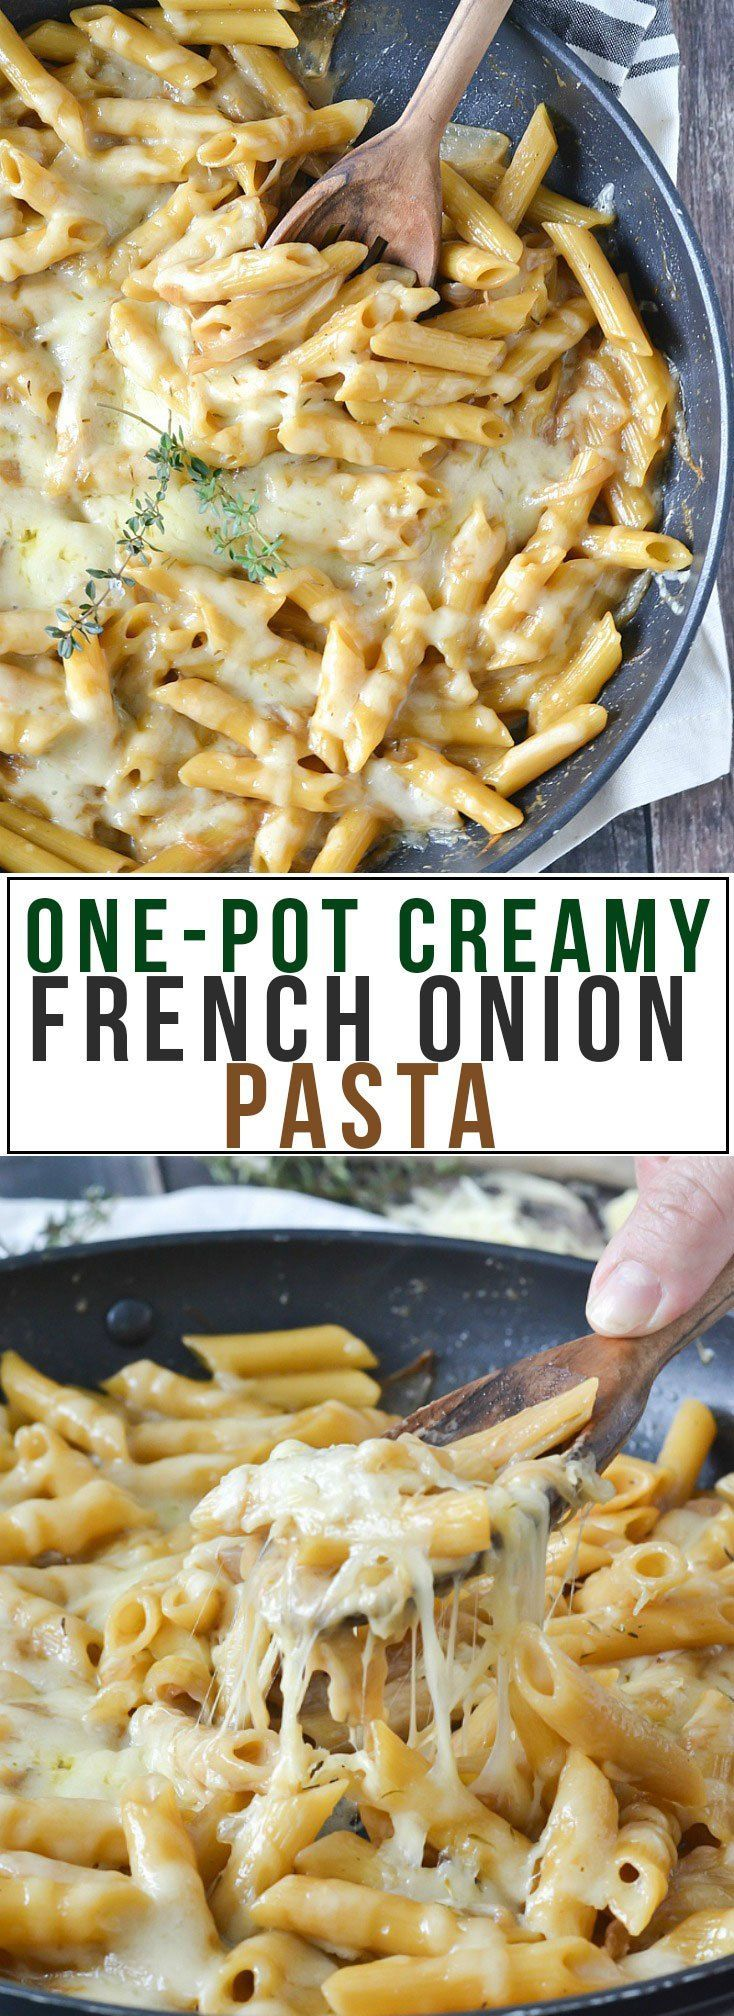 you love french onion soup, you're going to love this One-Pot CreamyFrench Onion Pasta loaded with caramelized onions in a creamy and delicious sauce.